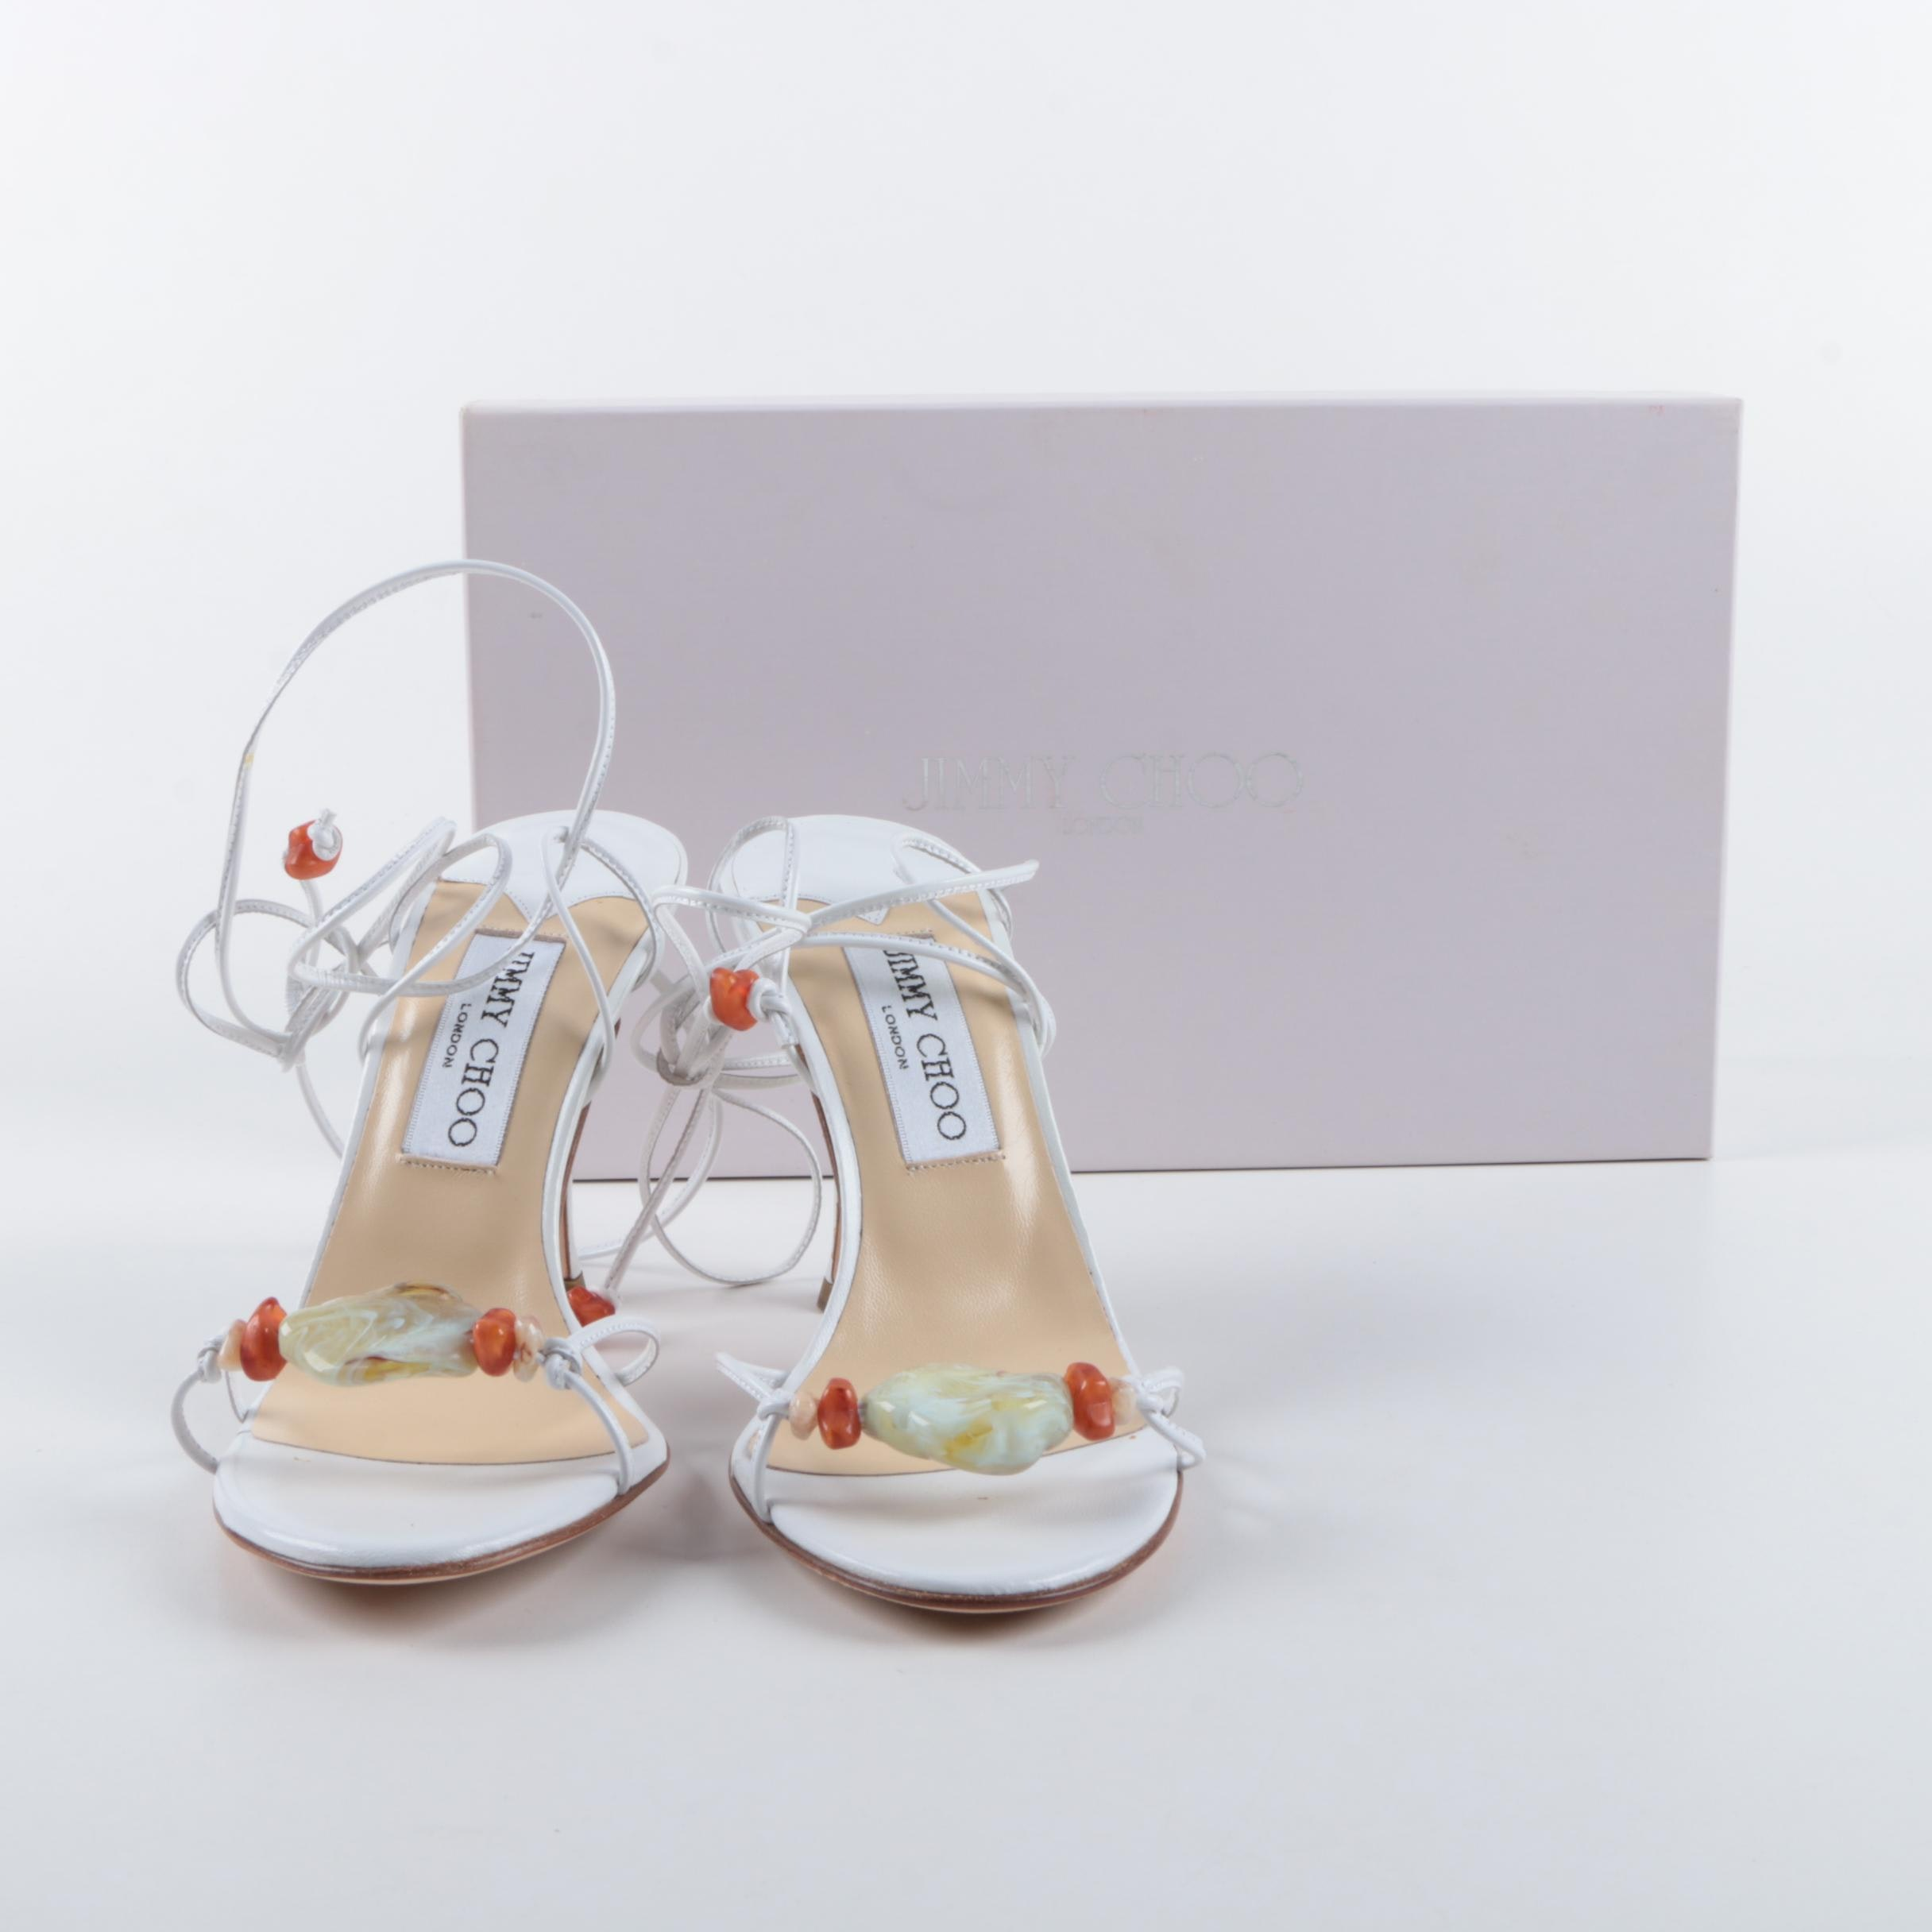 Jimmy Choo White Leather and Poured Glass Stone Strappy Sandals